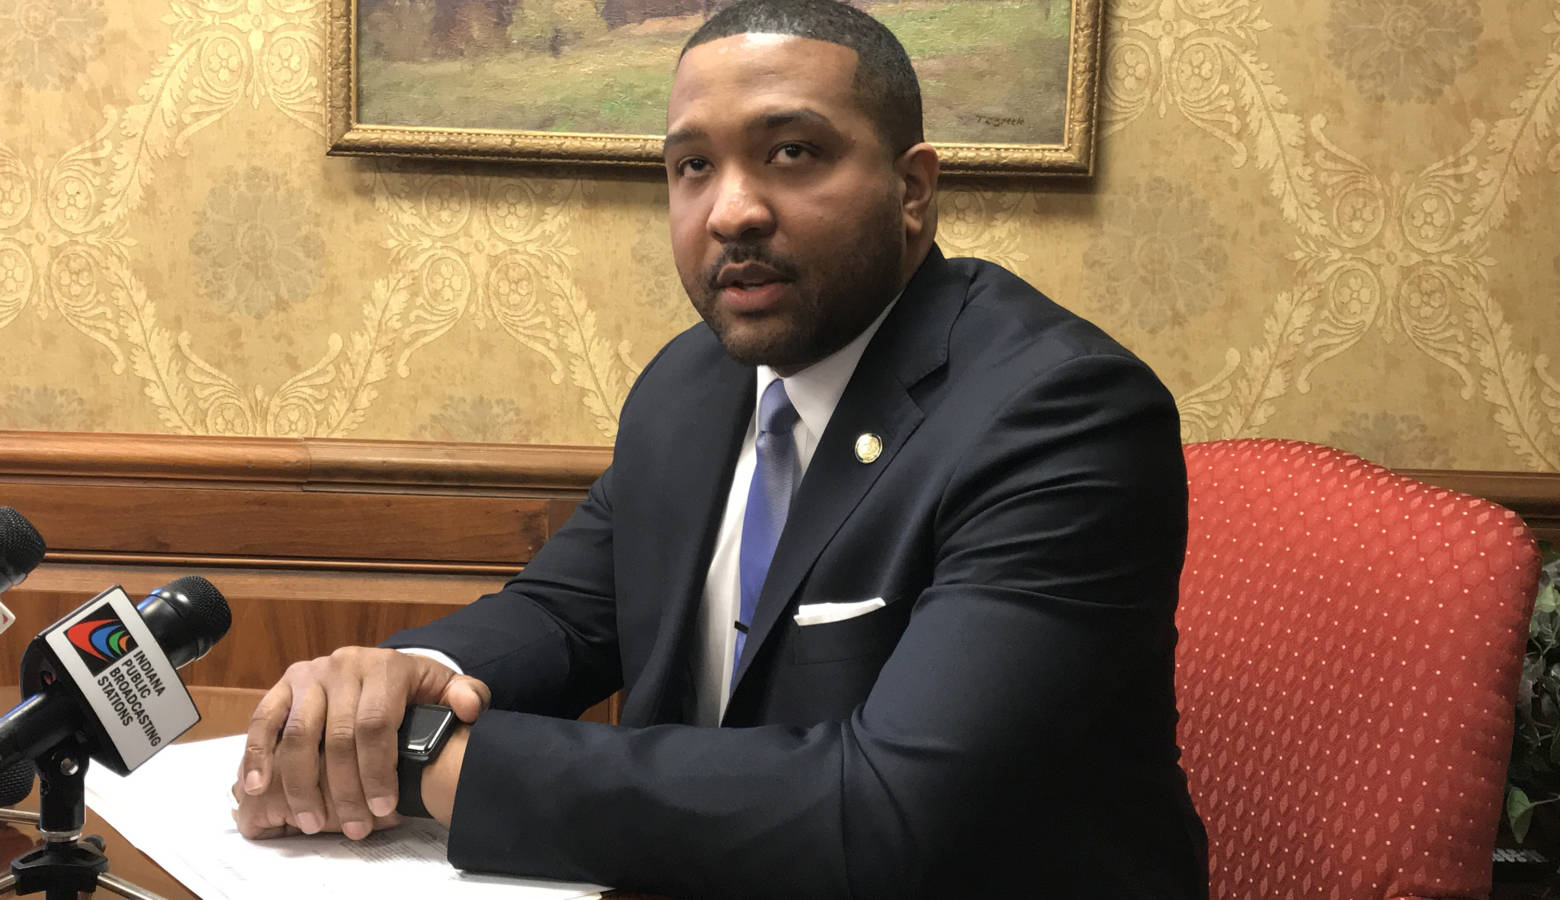 Sen. Eddie Melton (D-Gary) formed an exploratory committee for a gubernatorial bid. (FILE PHOTO: Brandon Smith/IPB News)